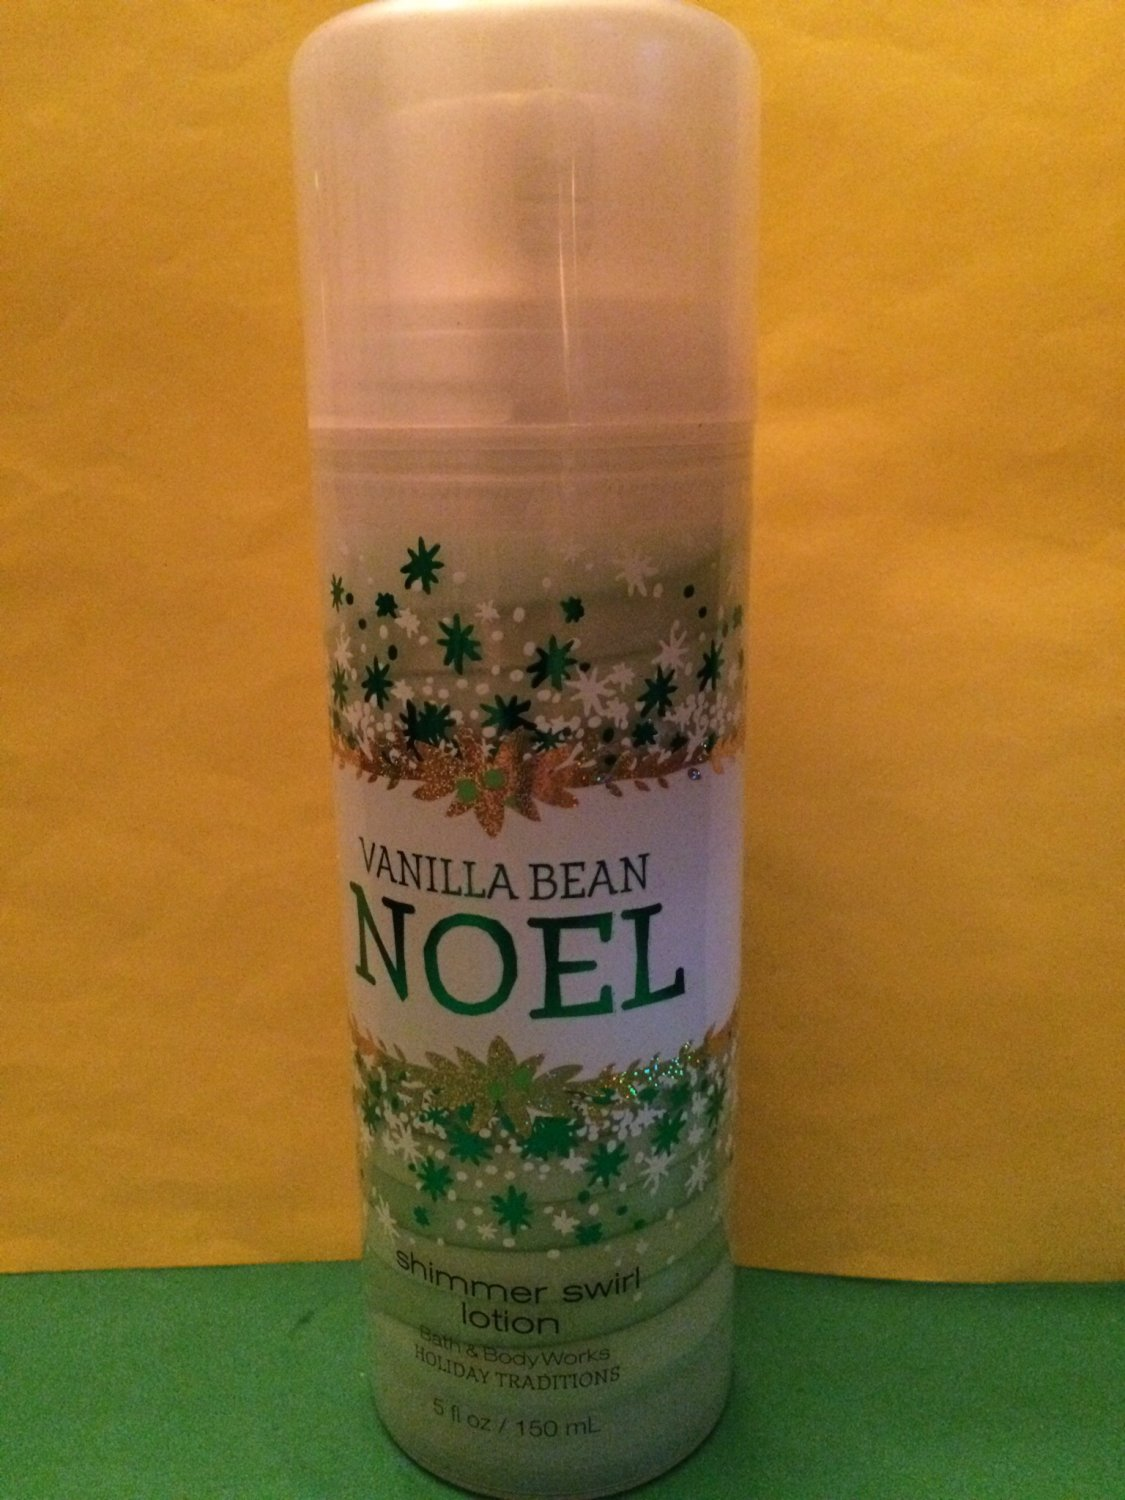 Bath Body Works Vanilla Bean Noel Shimmer Shea Swirl Body Lotion